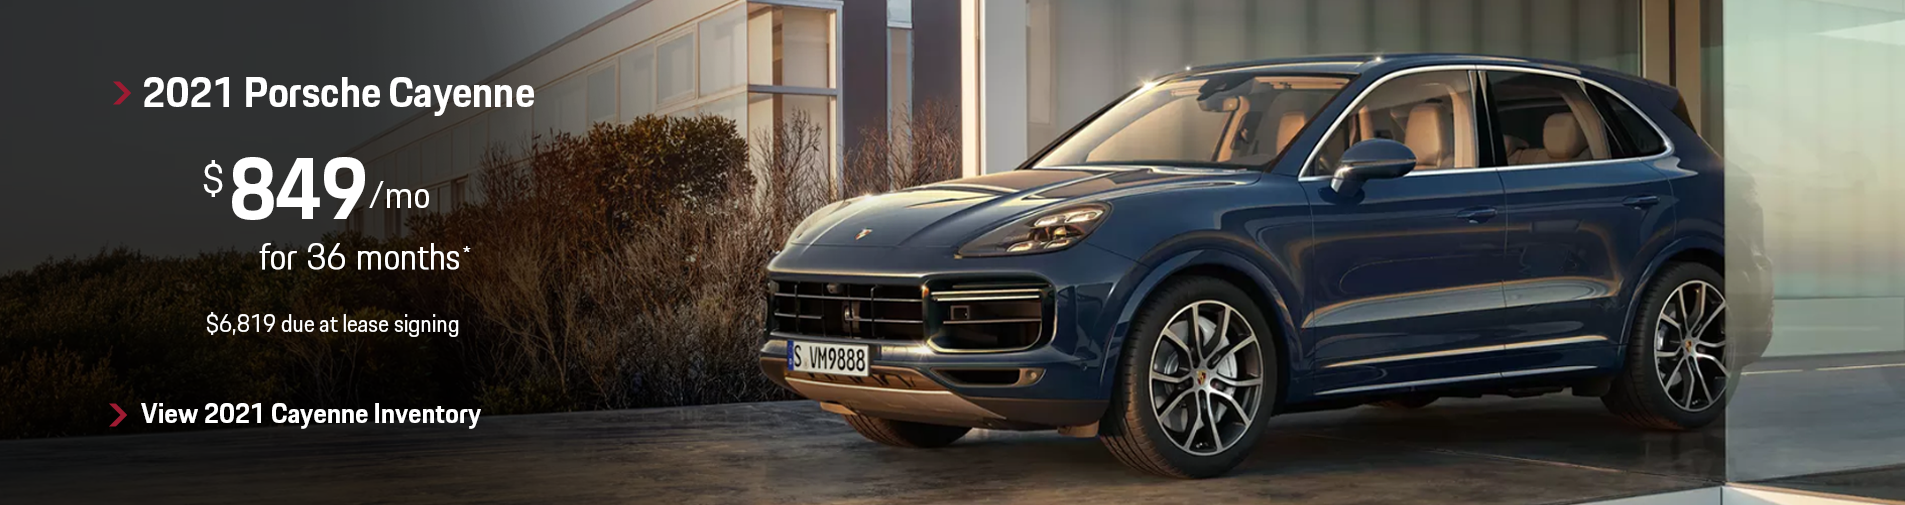 2021 Porsche Cayenne Lease Offer